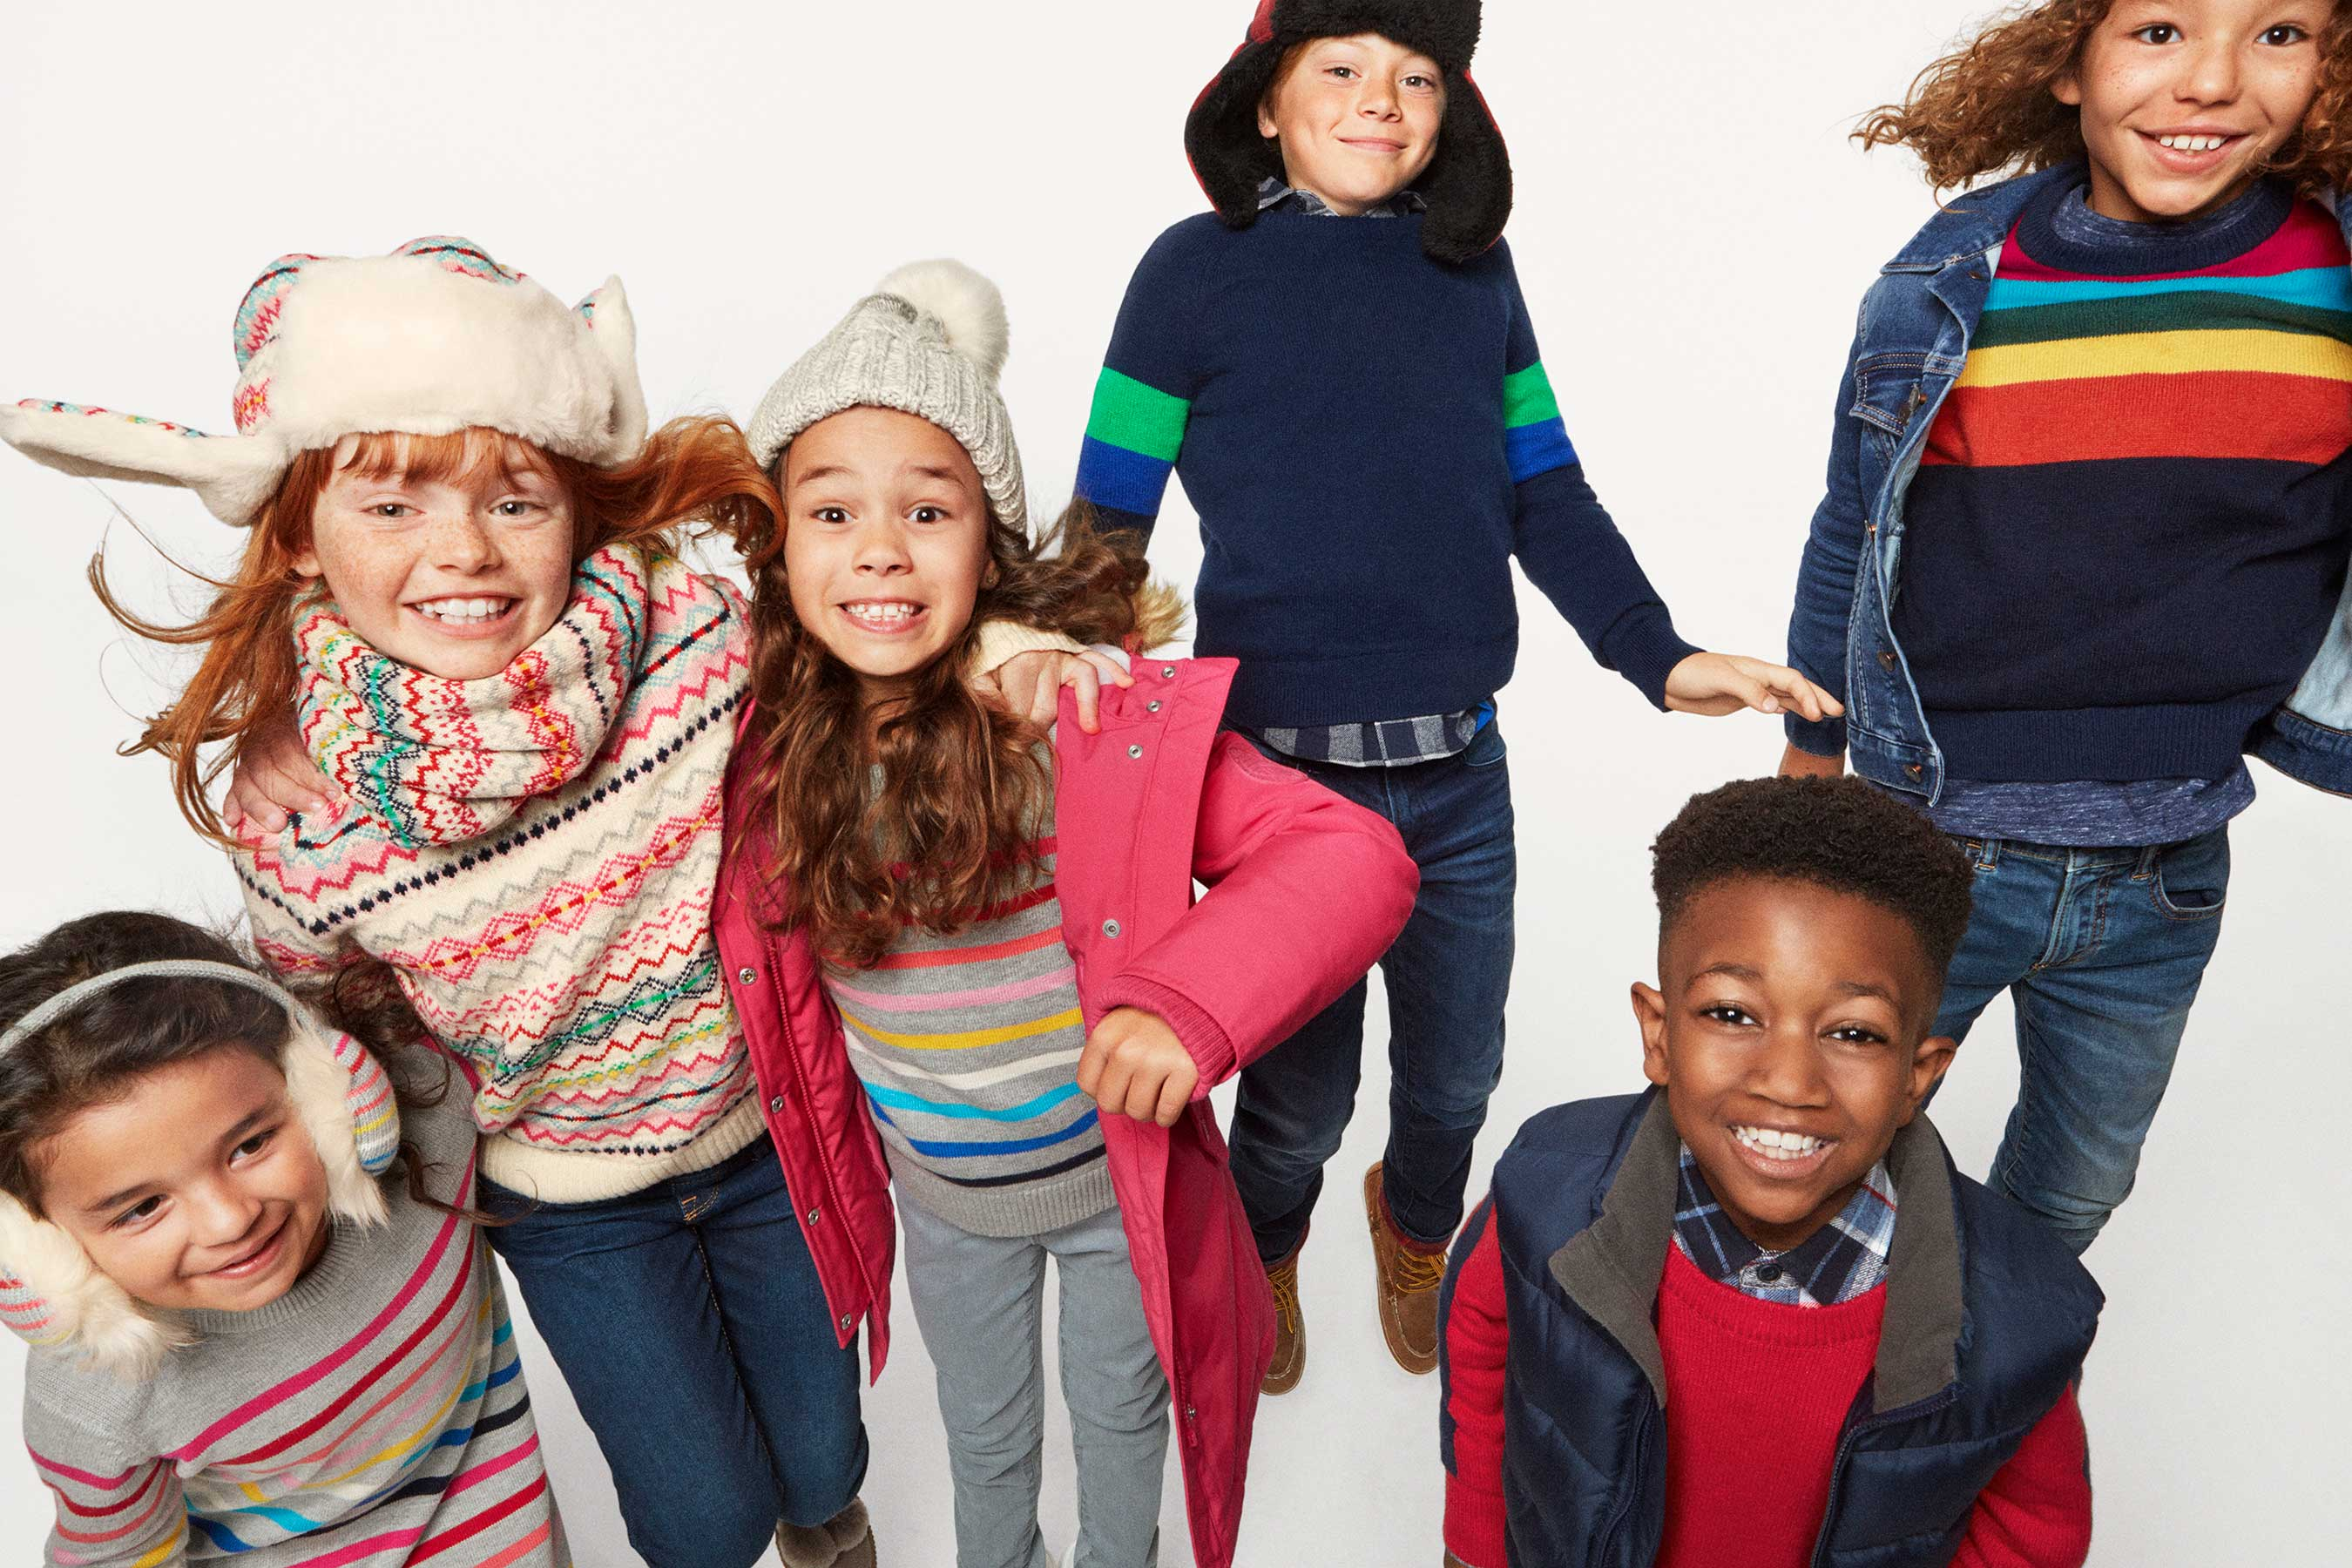 Gap Holiday 2018 Meet Me in the Gap